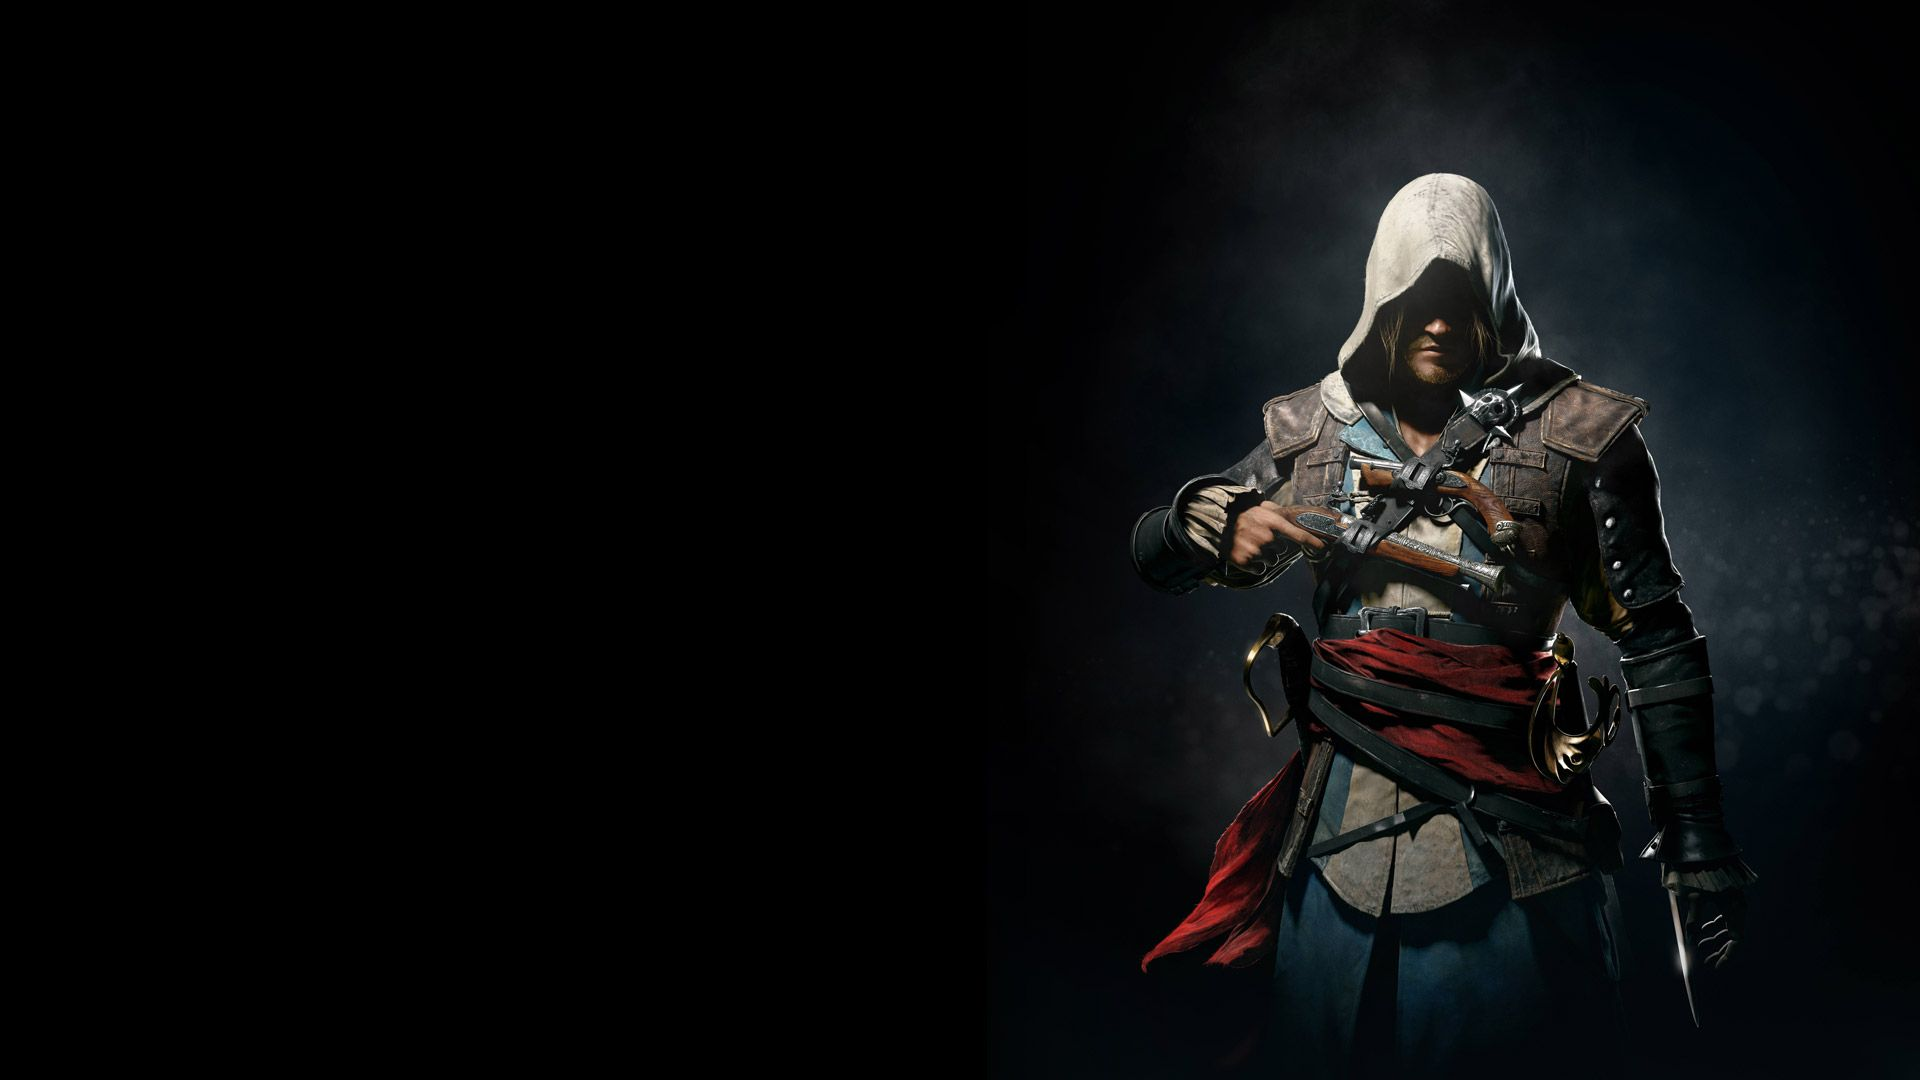 Undefined assassin creed wallpaper 28 wallpapers adorable undefined assassin creed wallpaper 28 wallpapers adorable wallpapers voltagebd Image collections